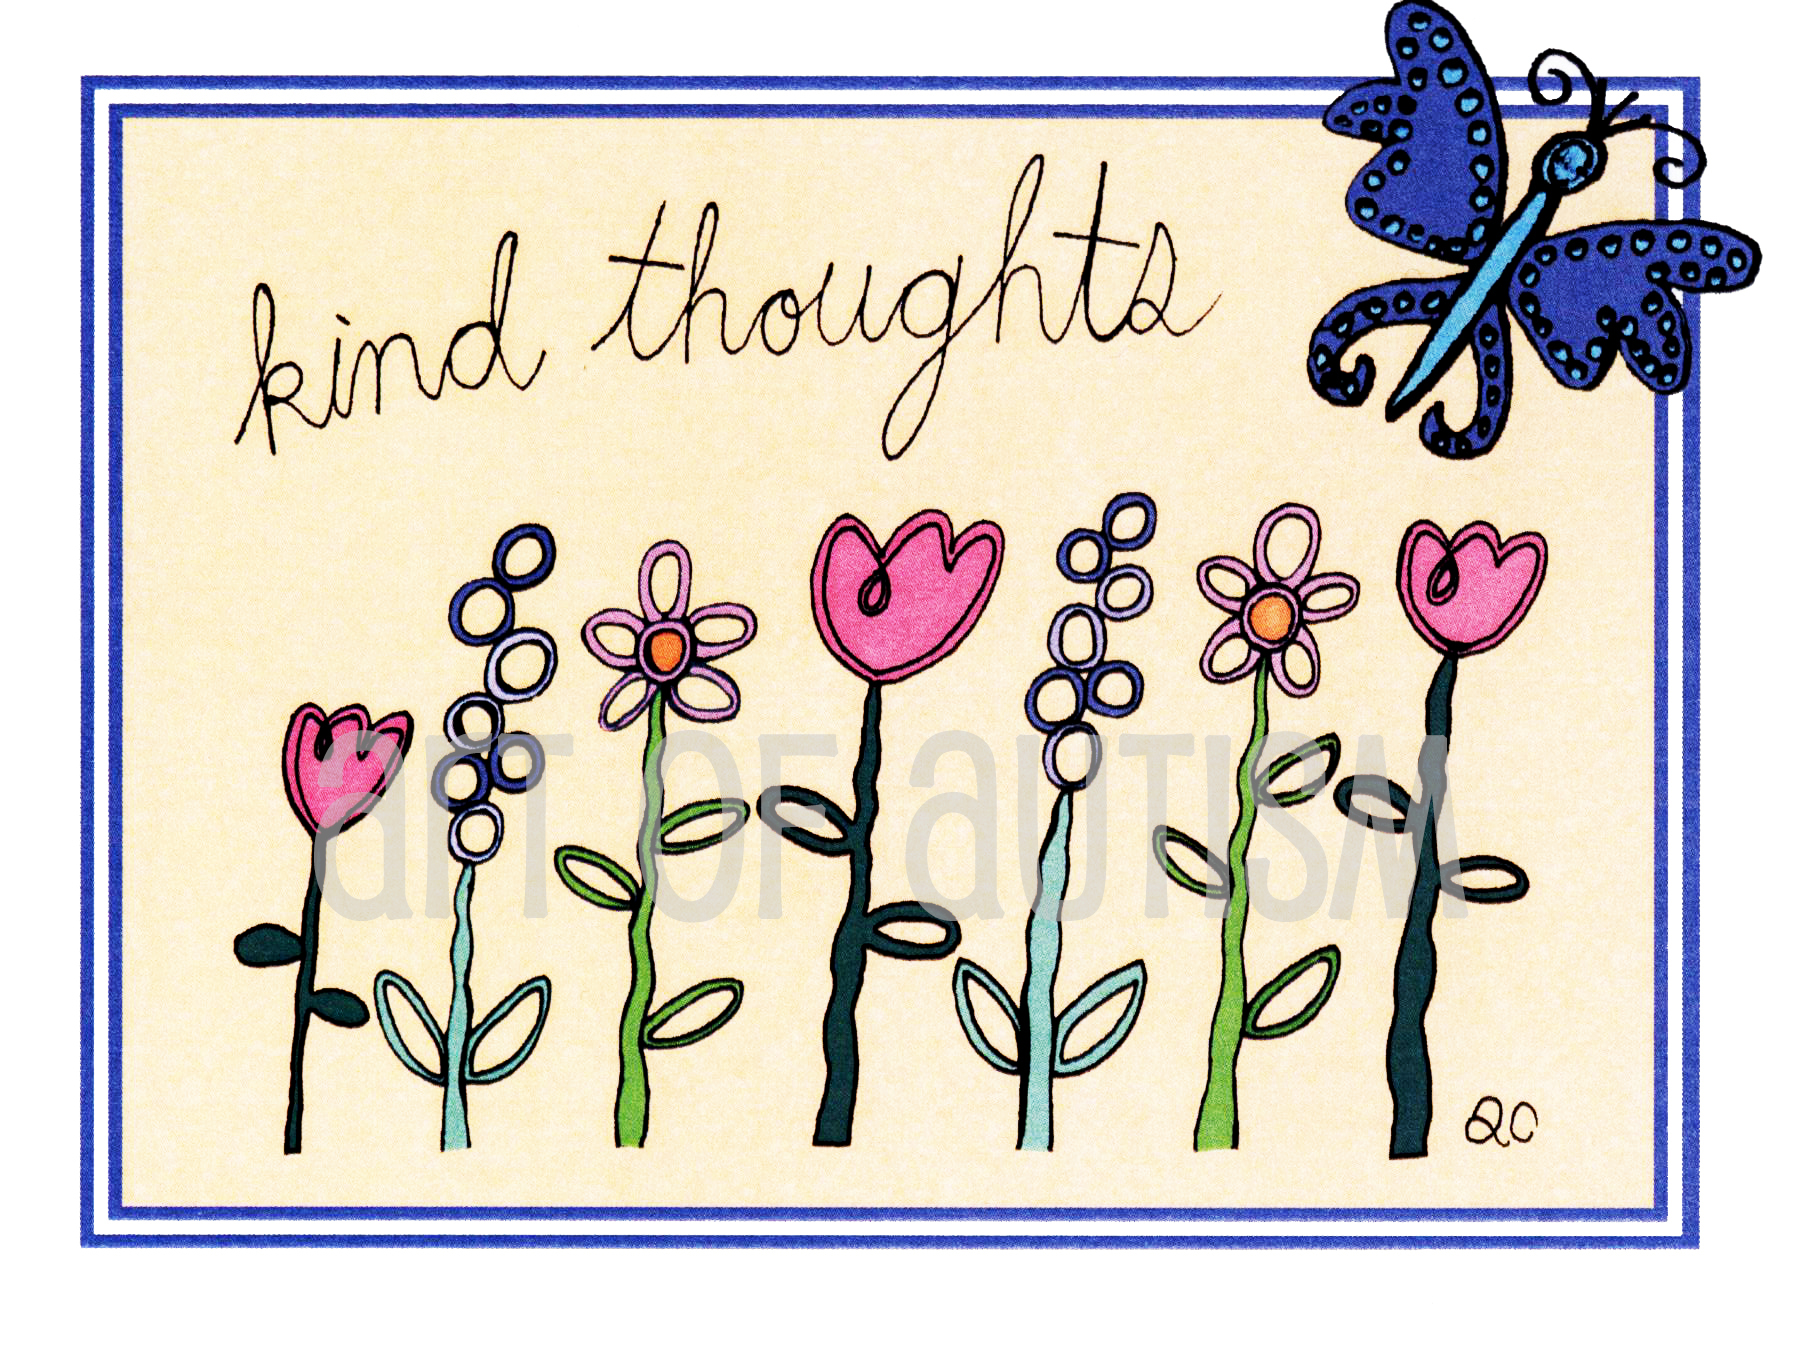 11-030KindThoughts